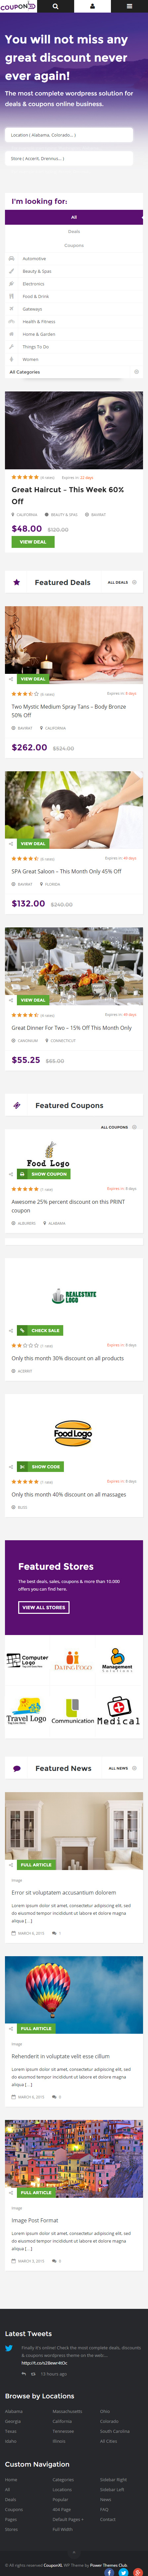 Coupon xl theme demo - Send me coupons to my mail